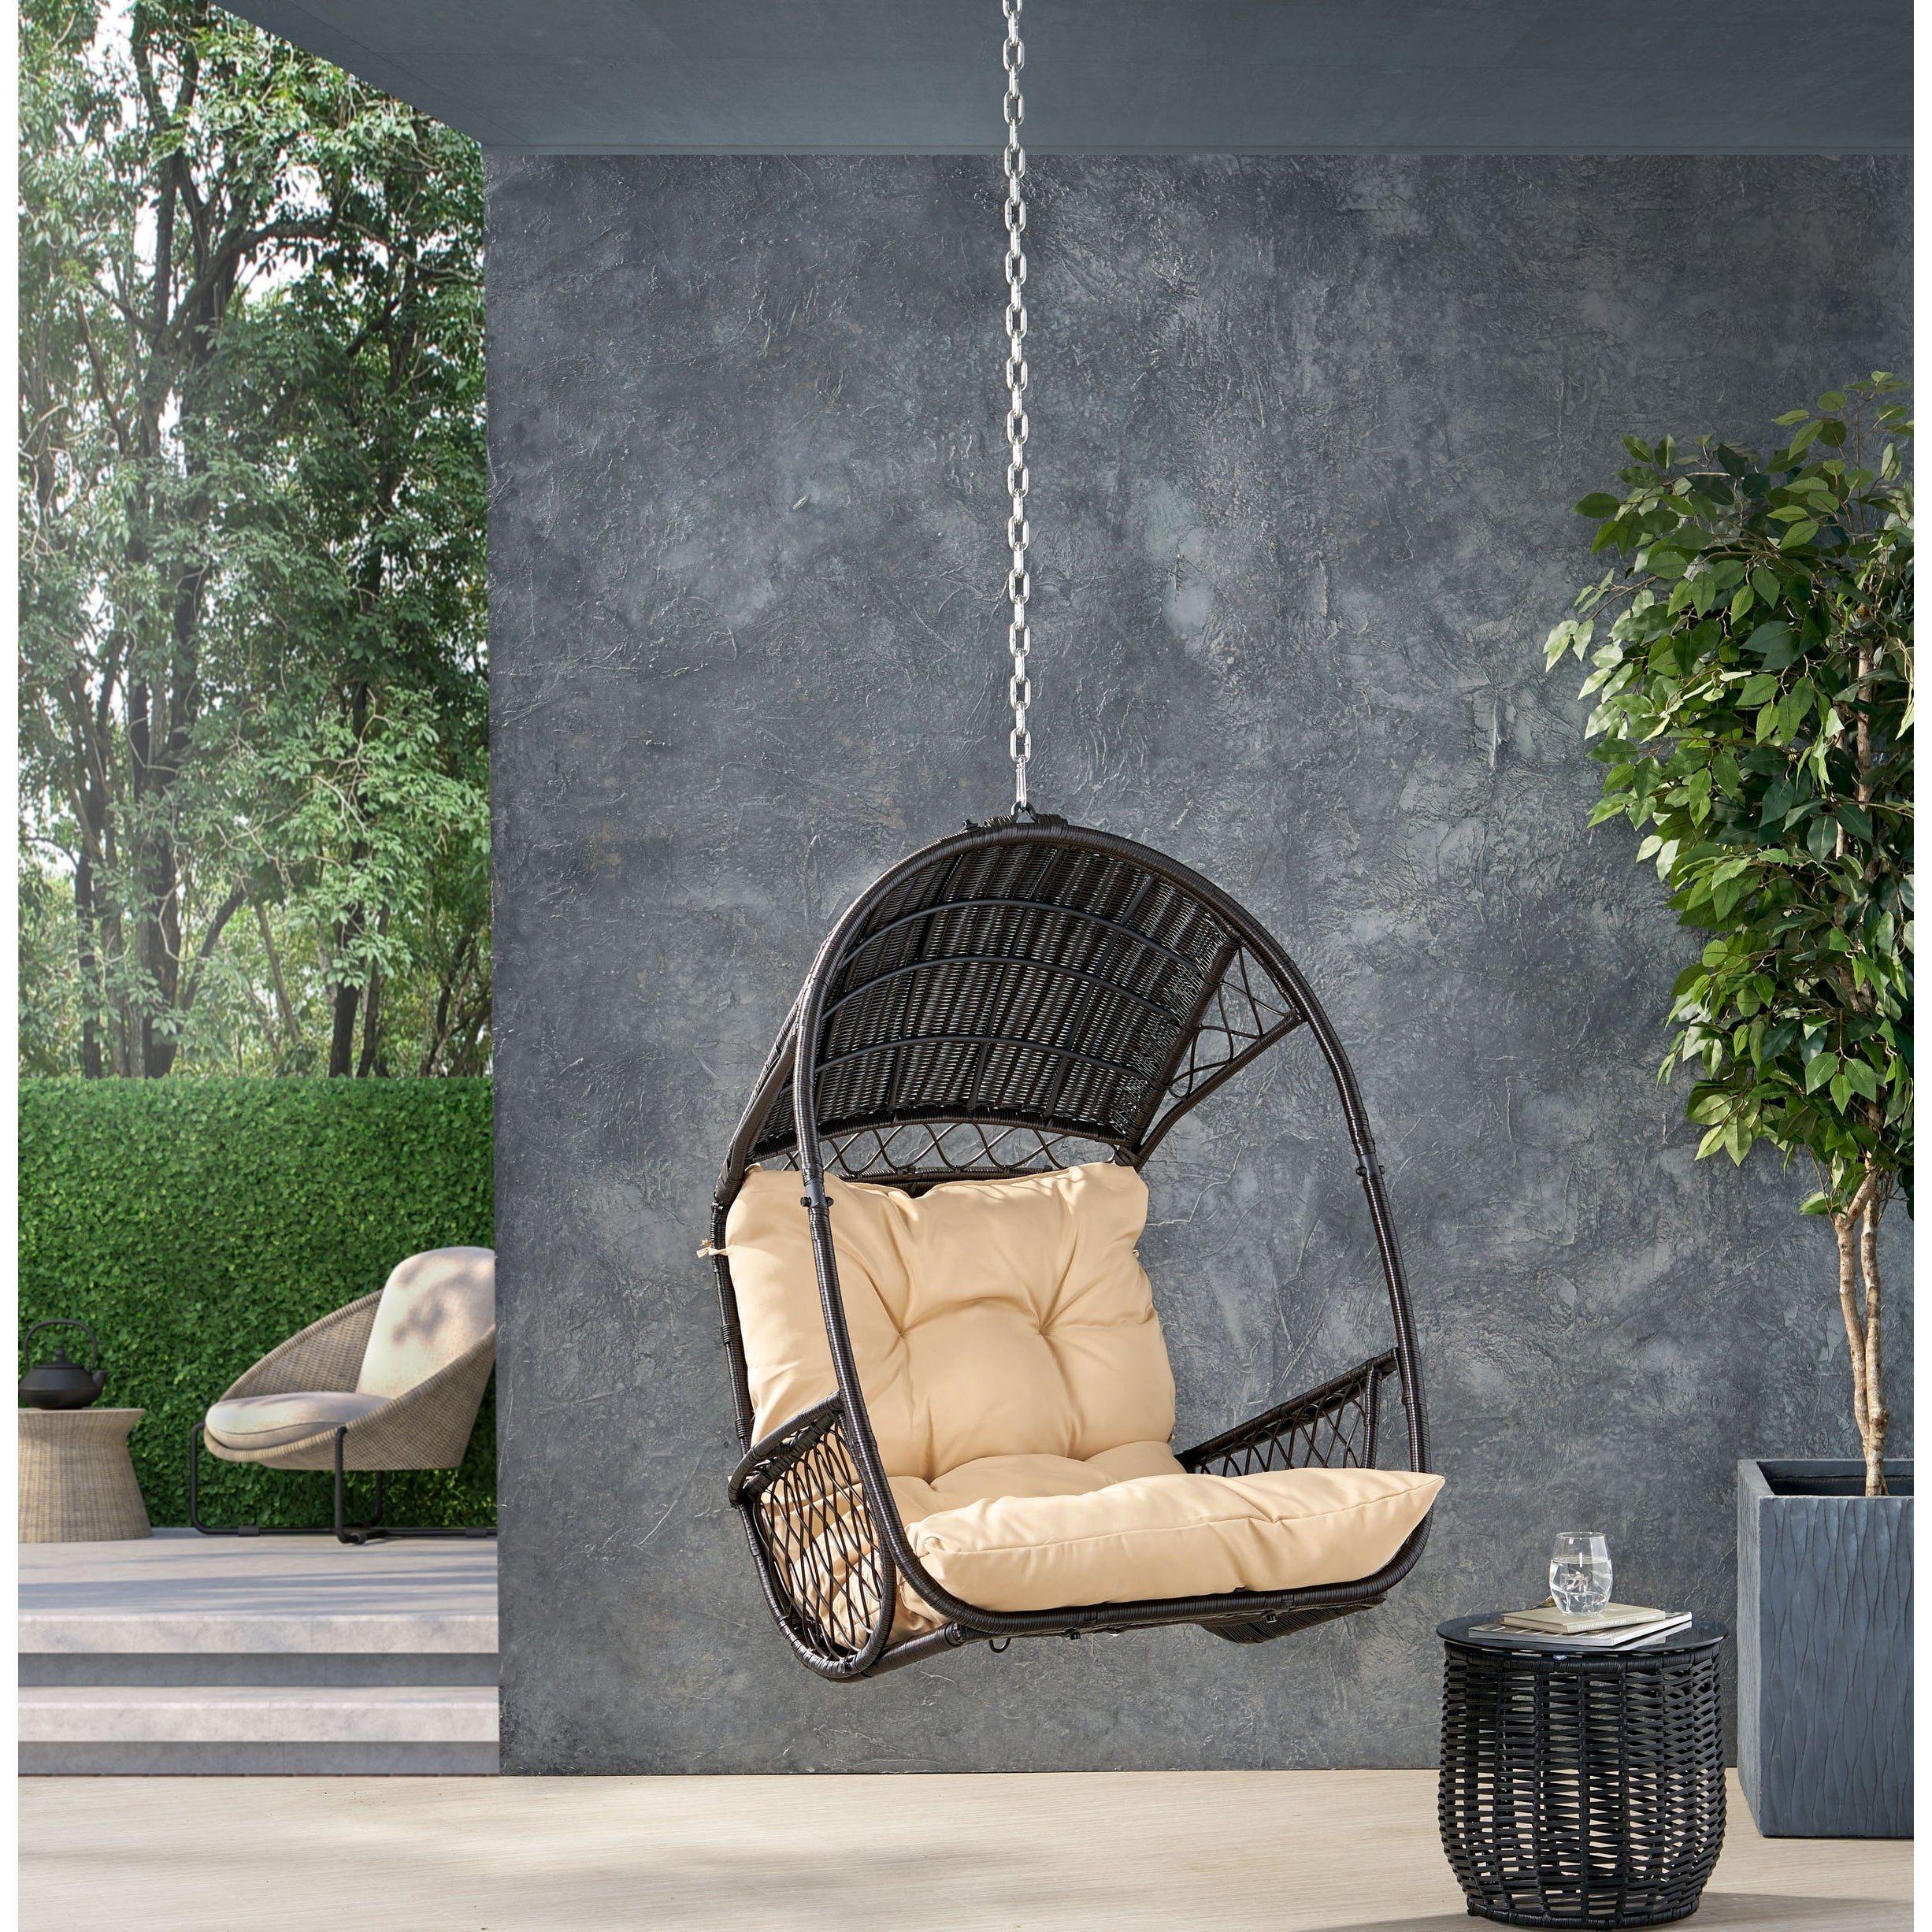 Greystone Outdoor Indoor Wicker Hanging Chair With 8 Foot Chain No Stand By Christopher Knight Home Overstock 31825459